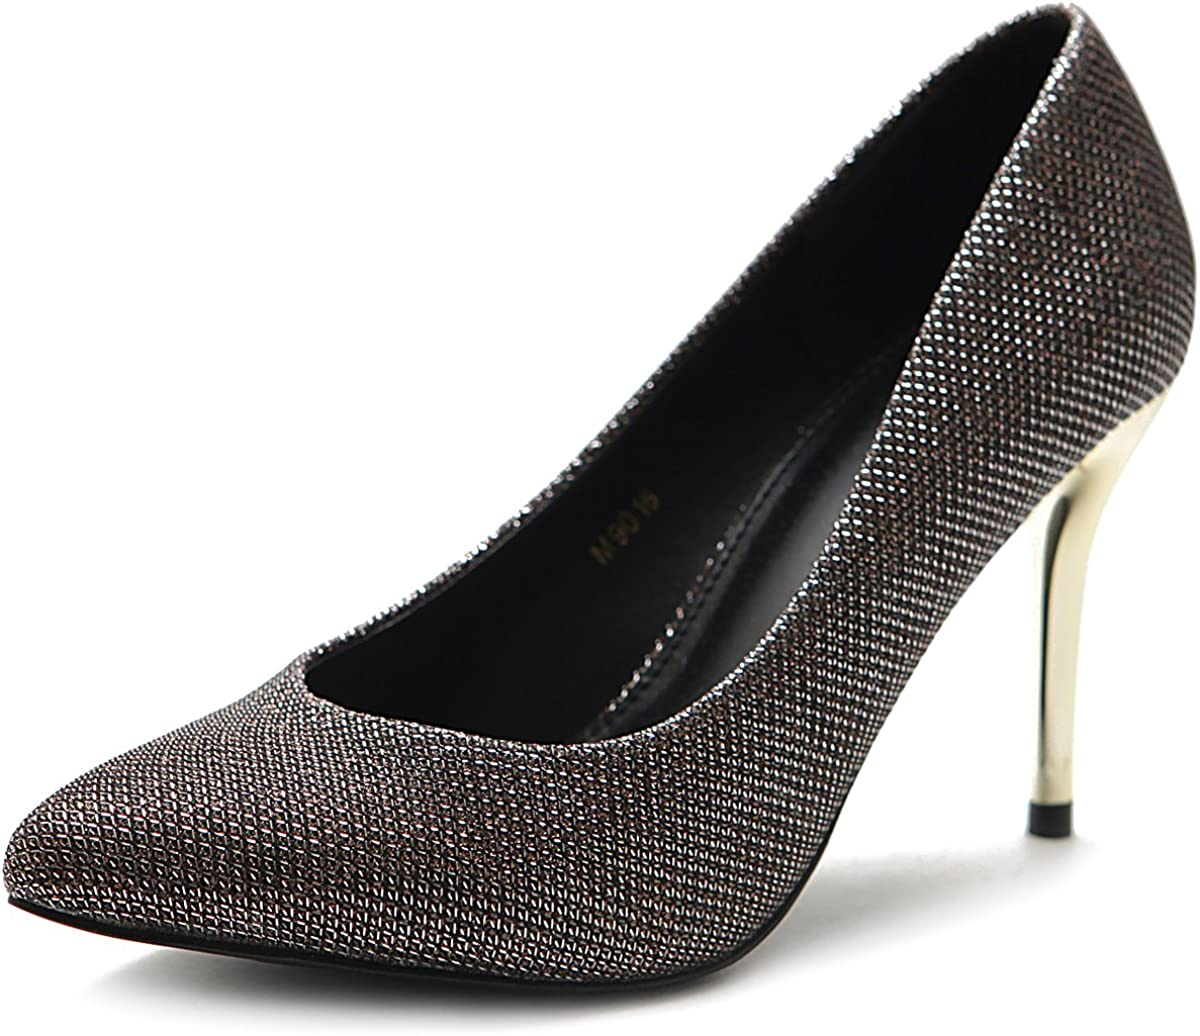 Ollio Women's Shoe Metalic High Glitter Inventory cleanup selling sale Heel Pump Selling D'Orsay